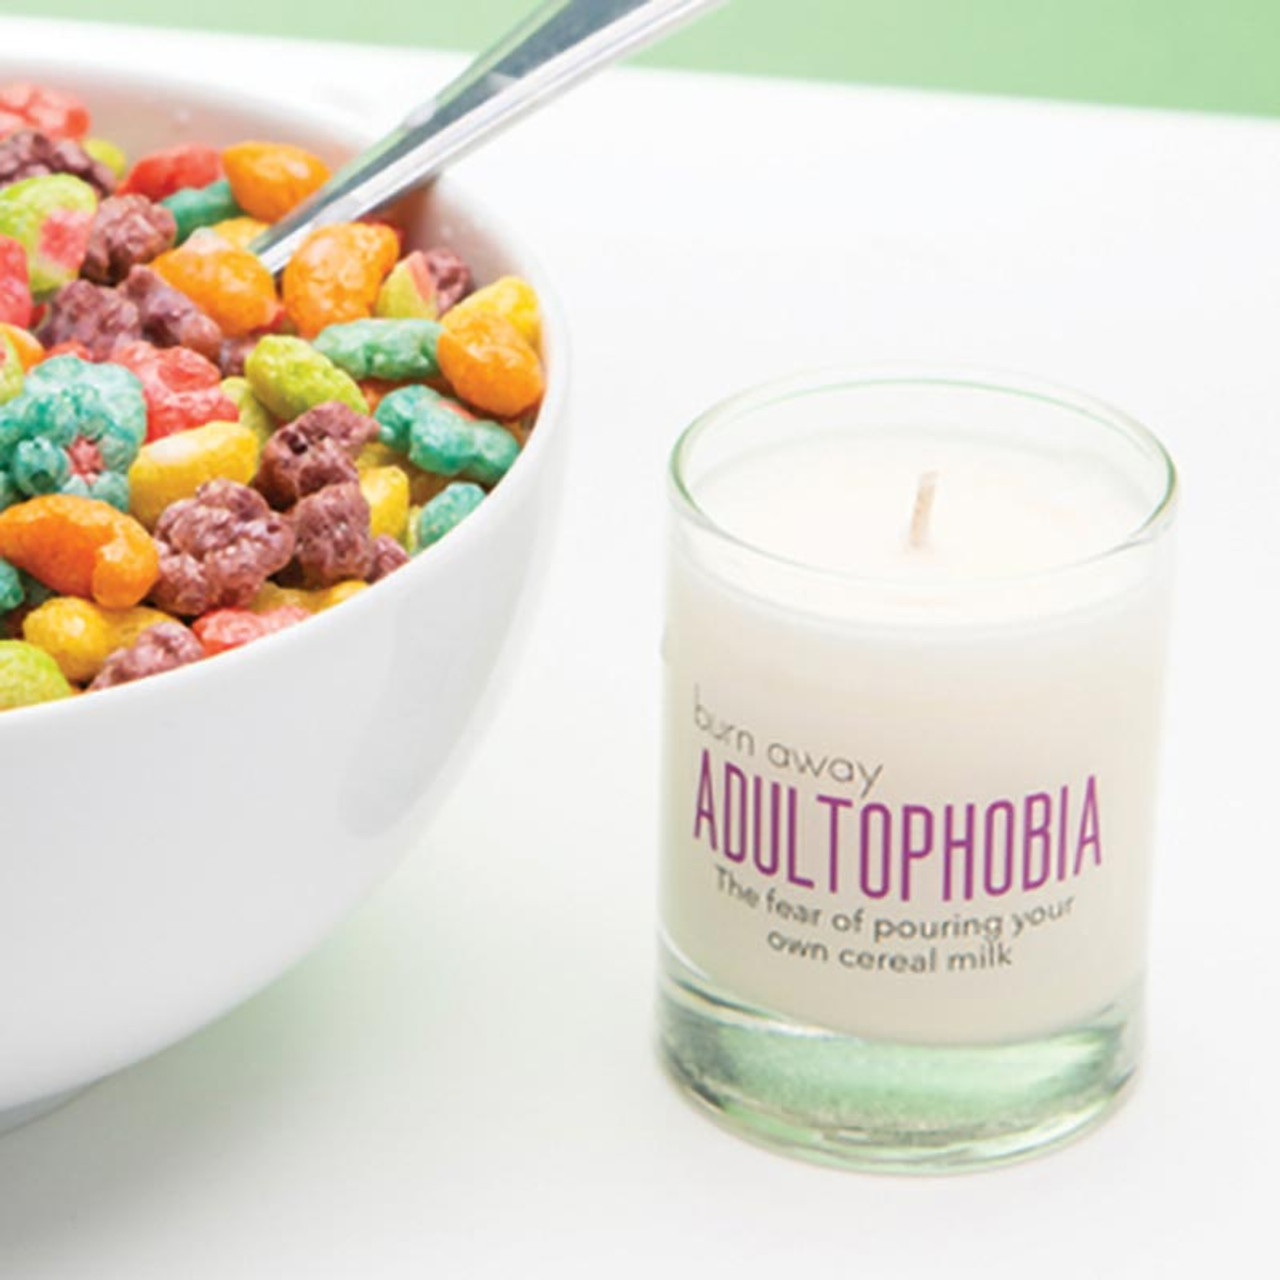 The fear of pouring your own cereal milk! Gift Candle